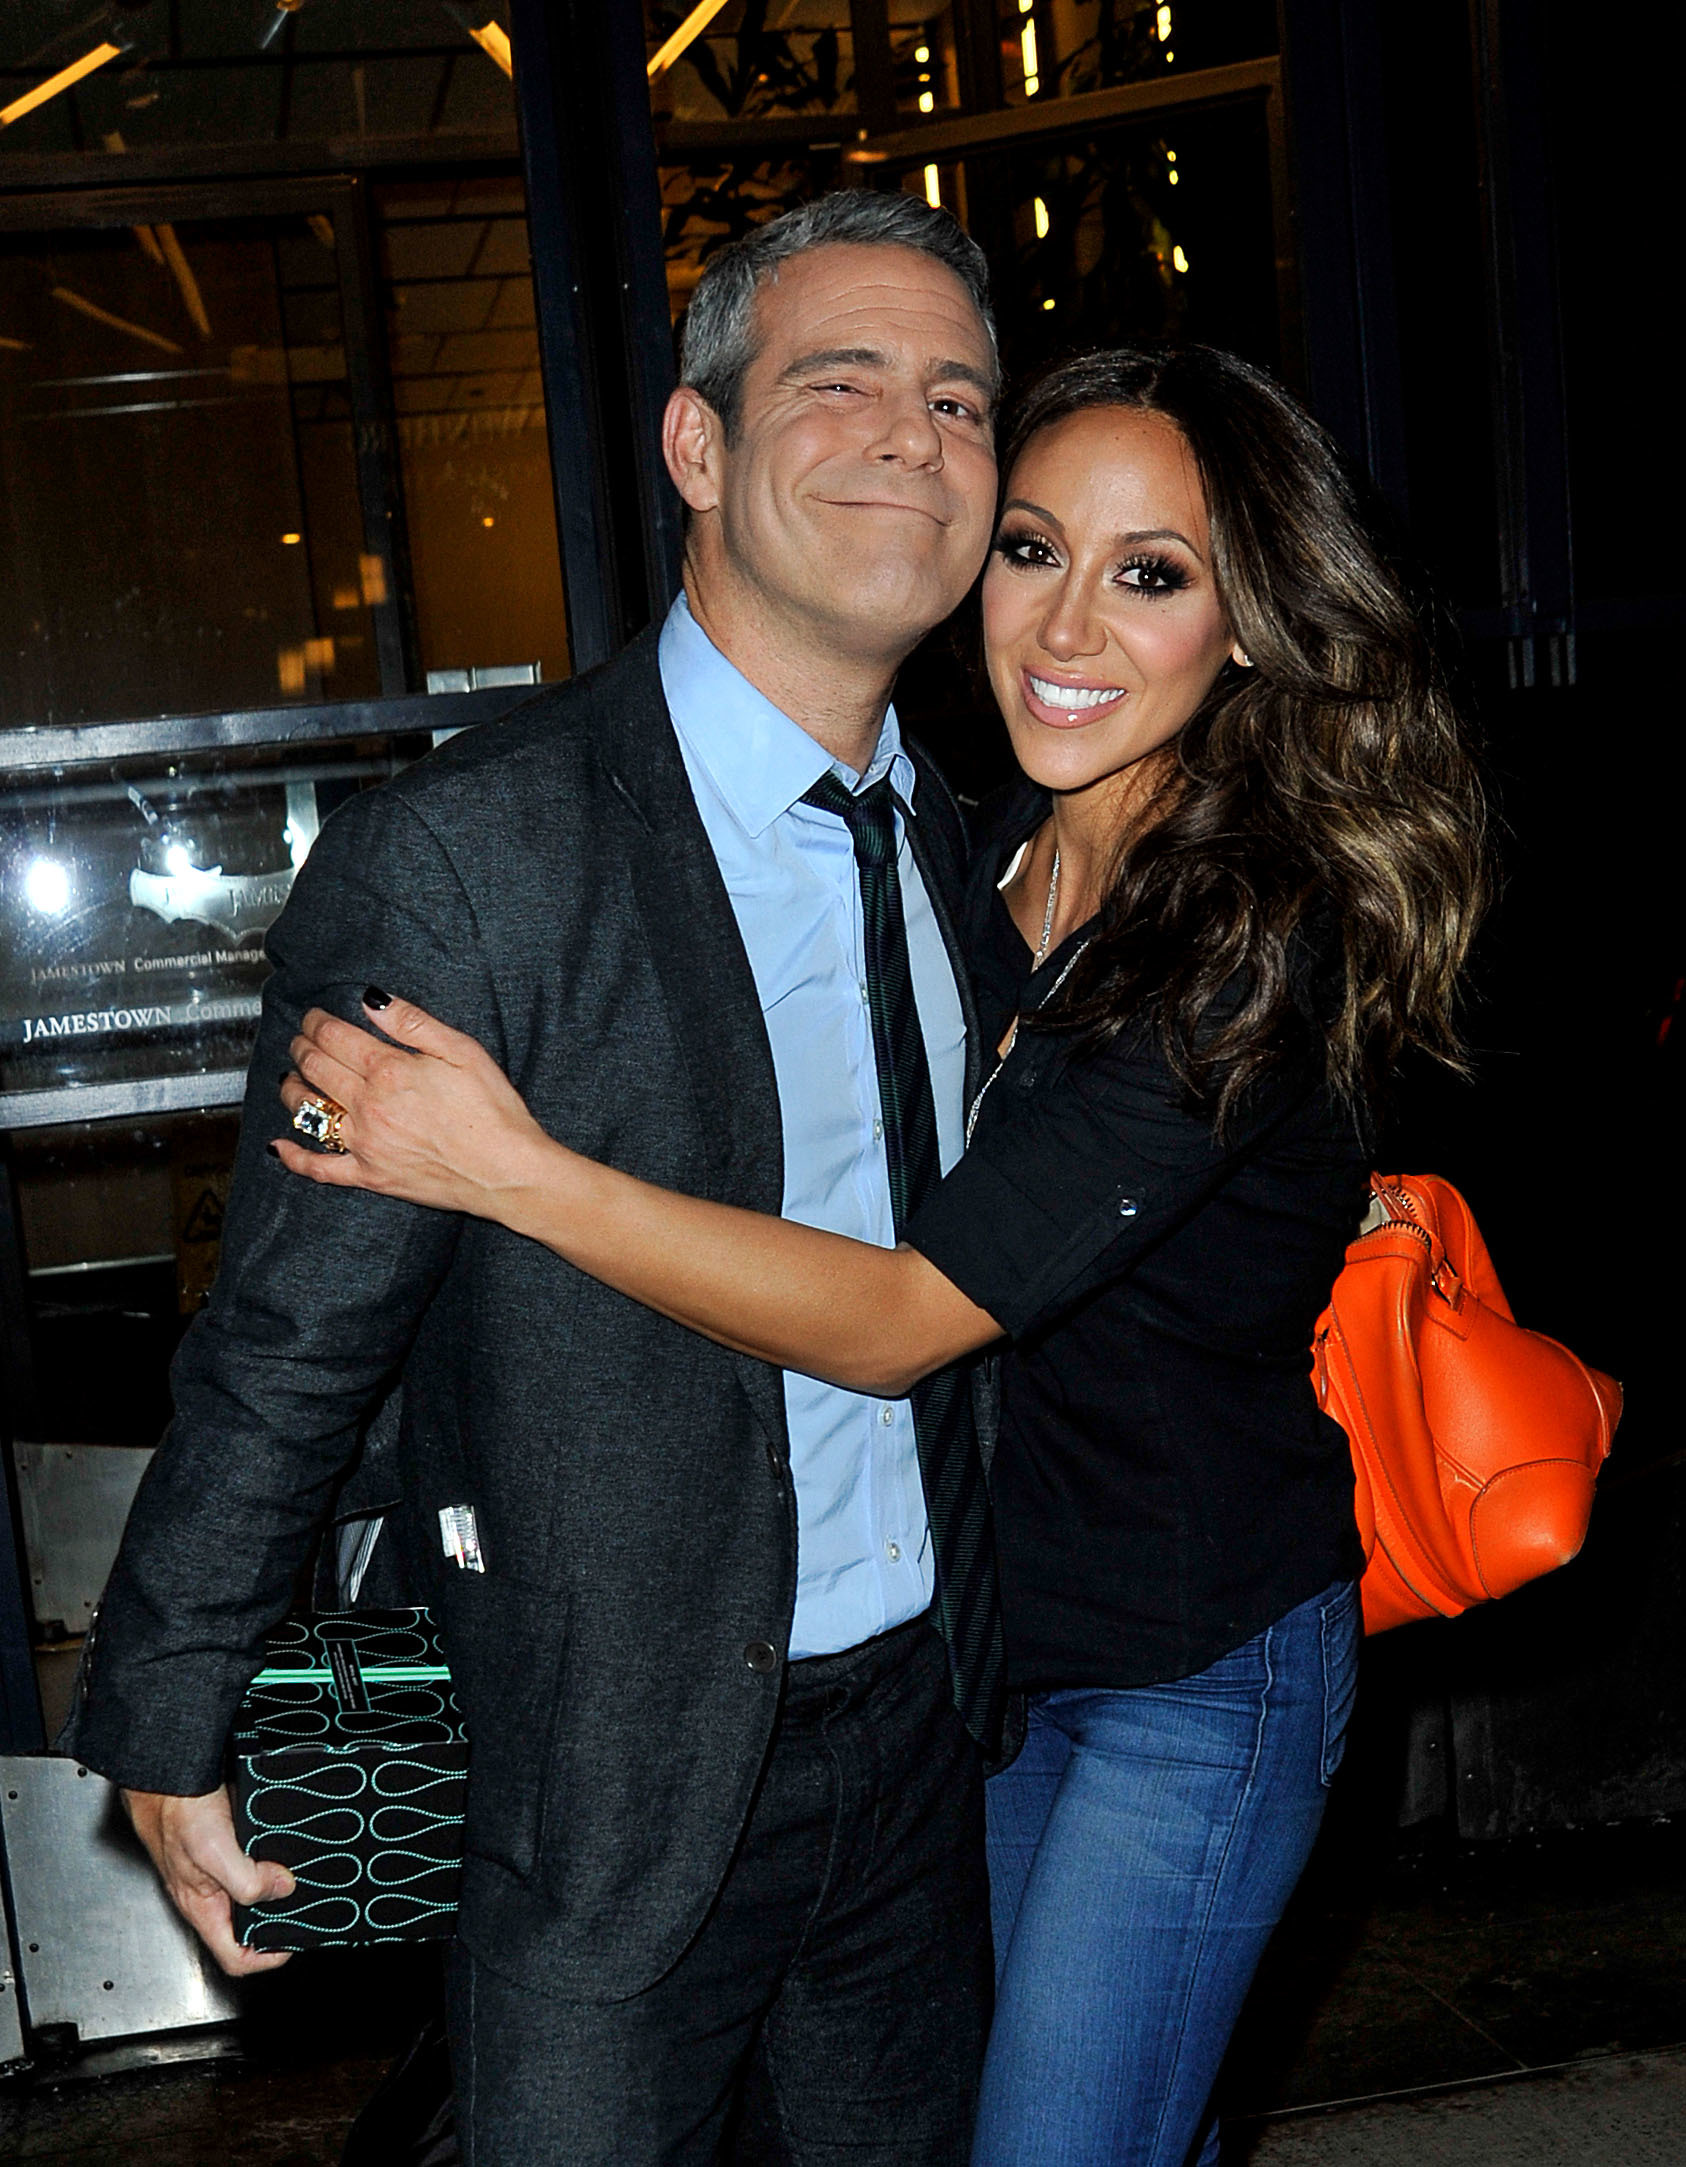 Andy Cohen and Melissa Gorga are seen in New York City on March 8, 2015.